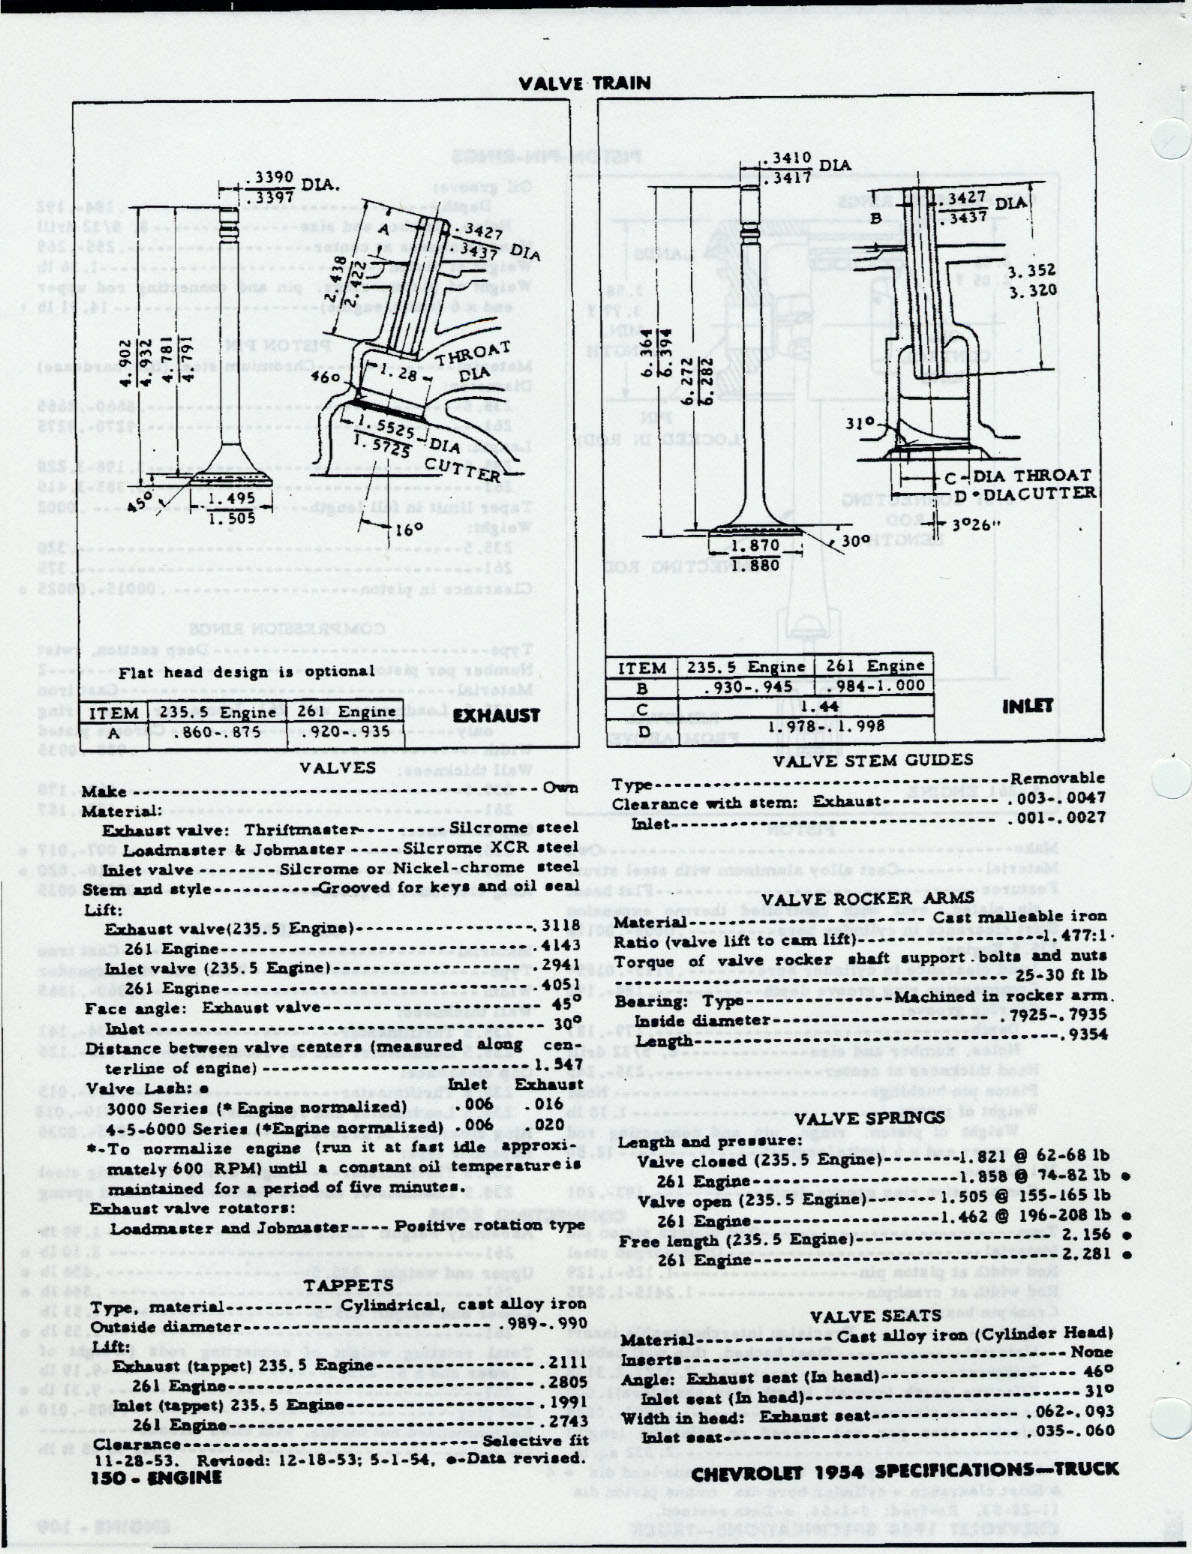 1954 Chevy Truck Documents Wiring Harness Player Error